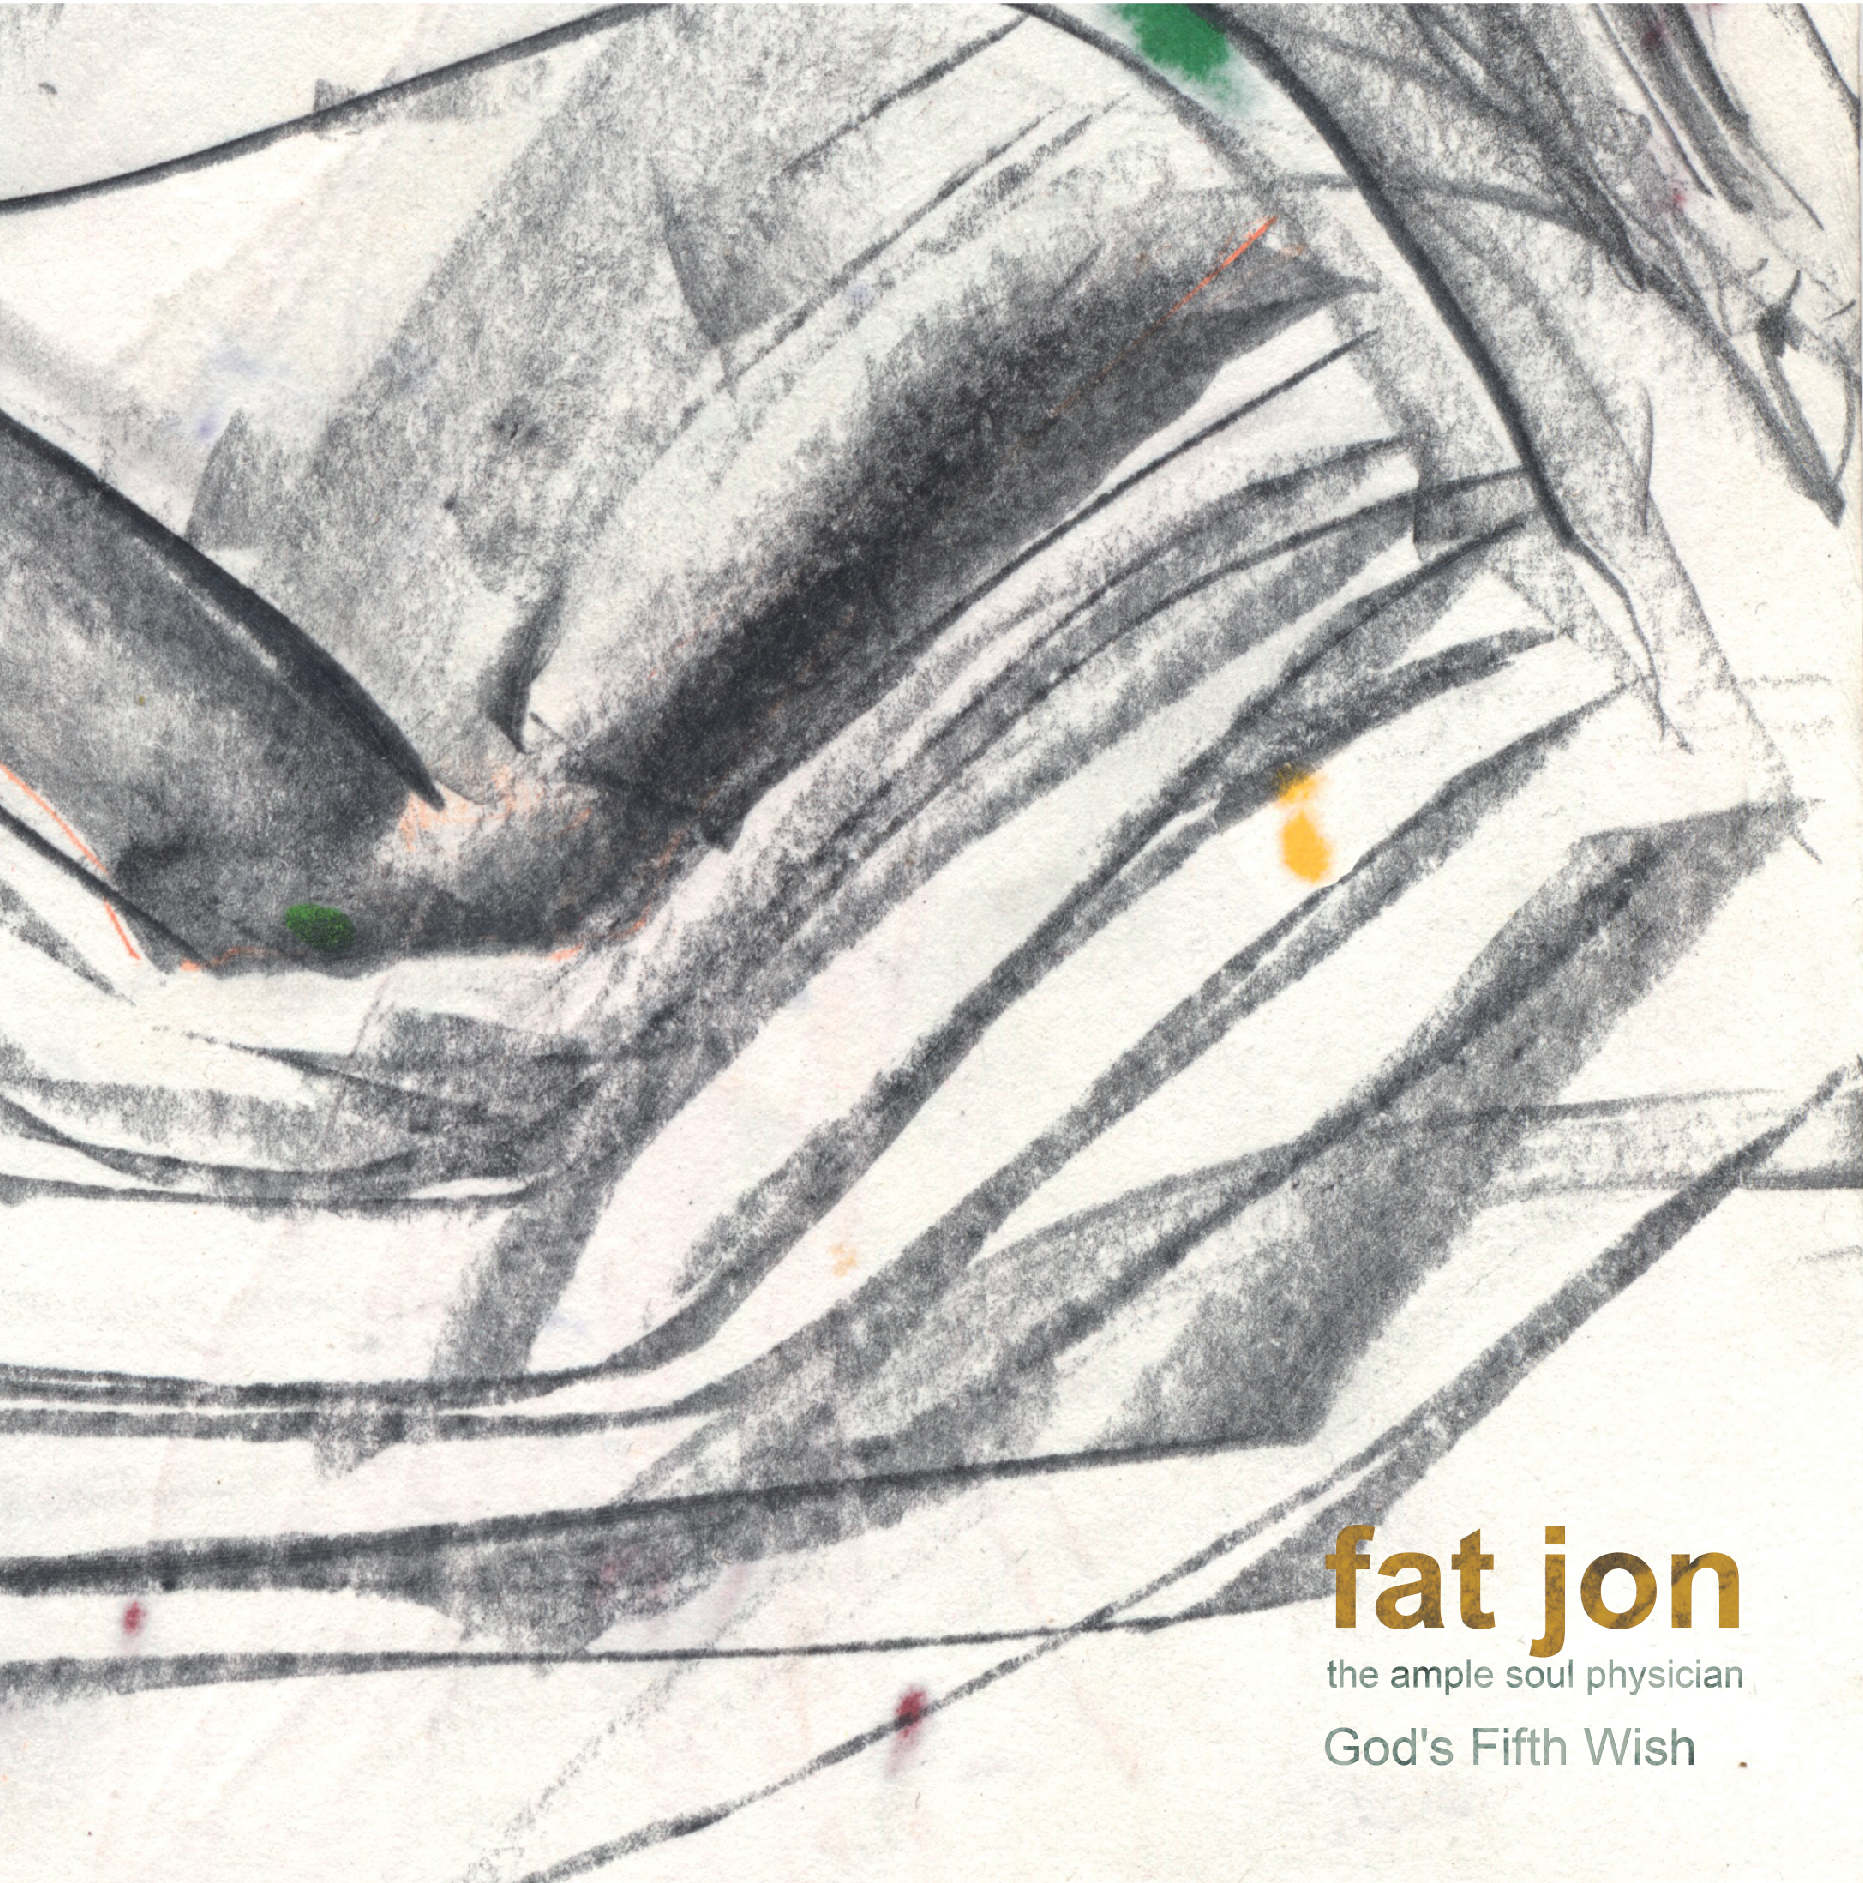 Fat Jon/GOD'S FIFTH WISH COLOR VINYL LP